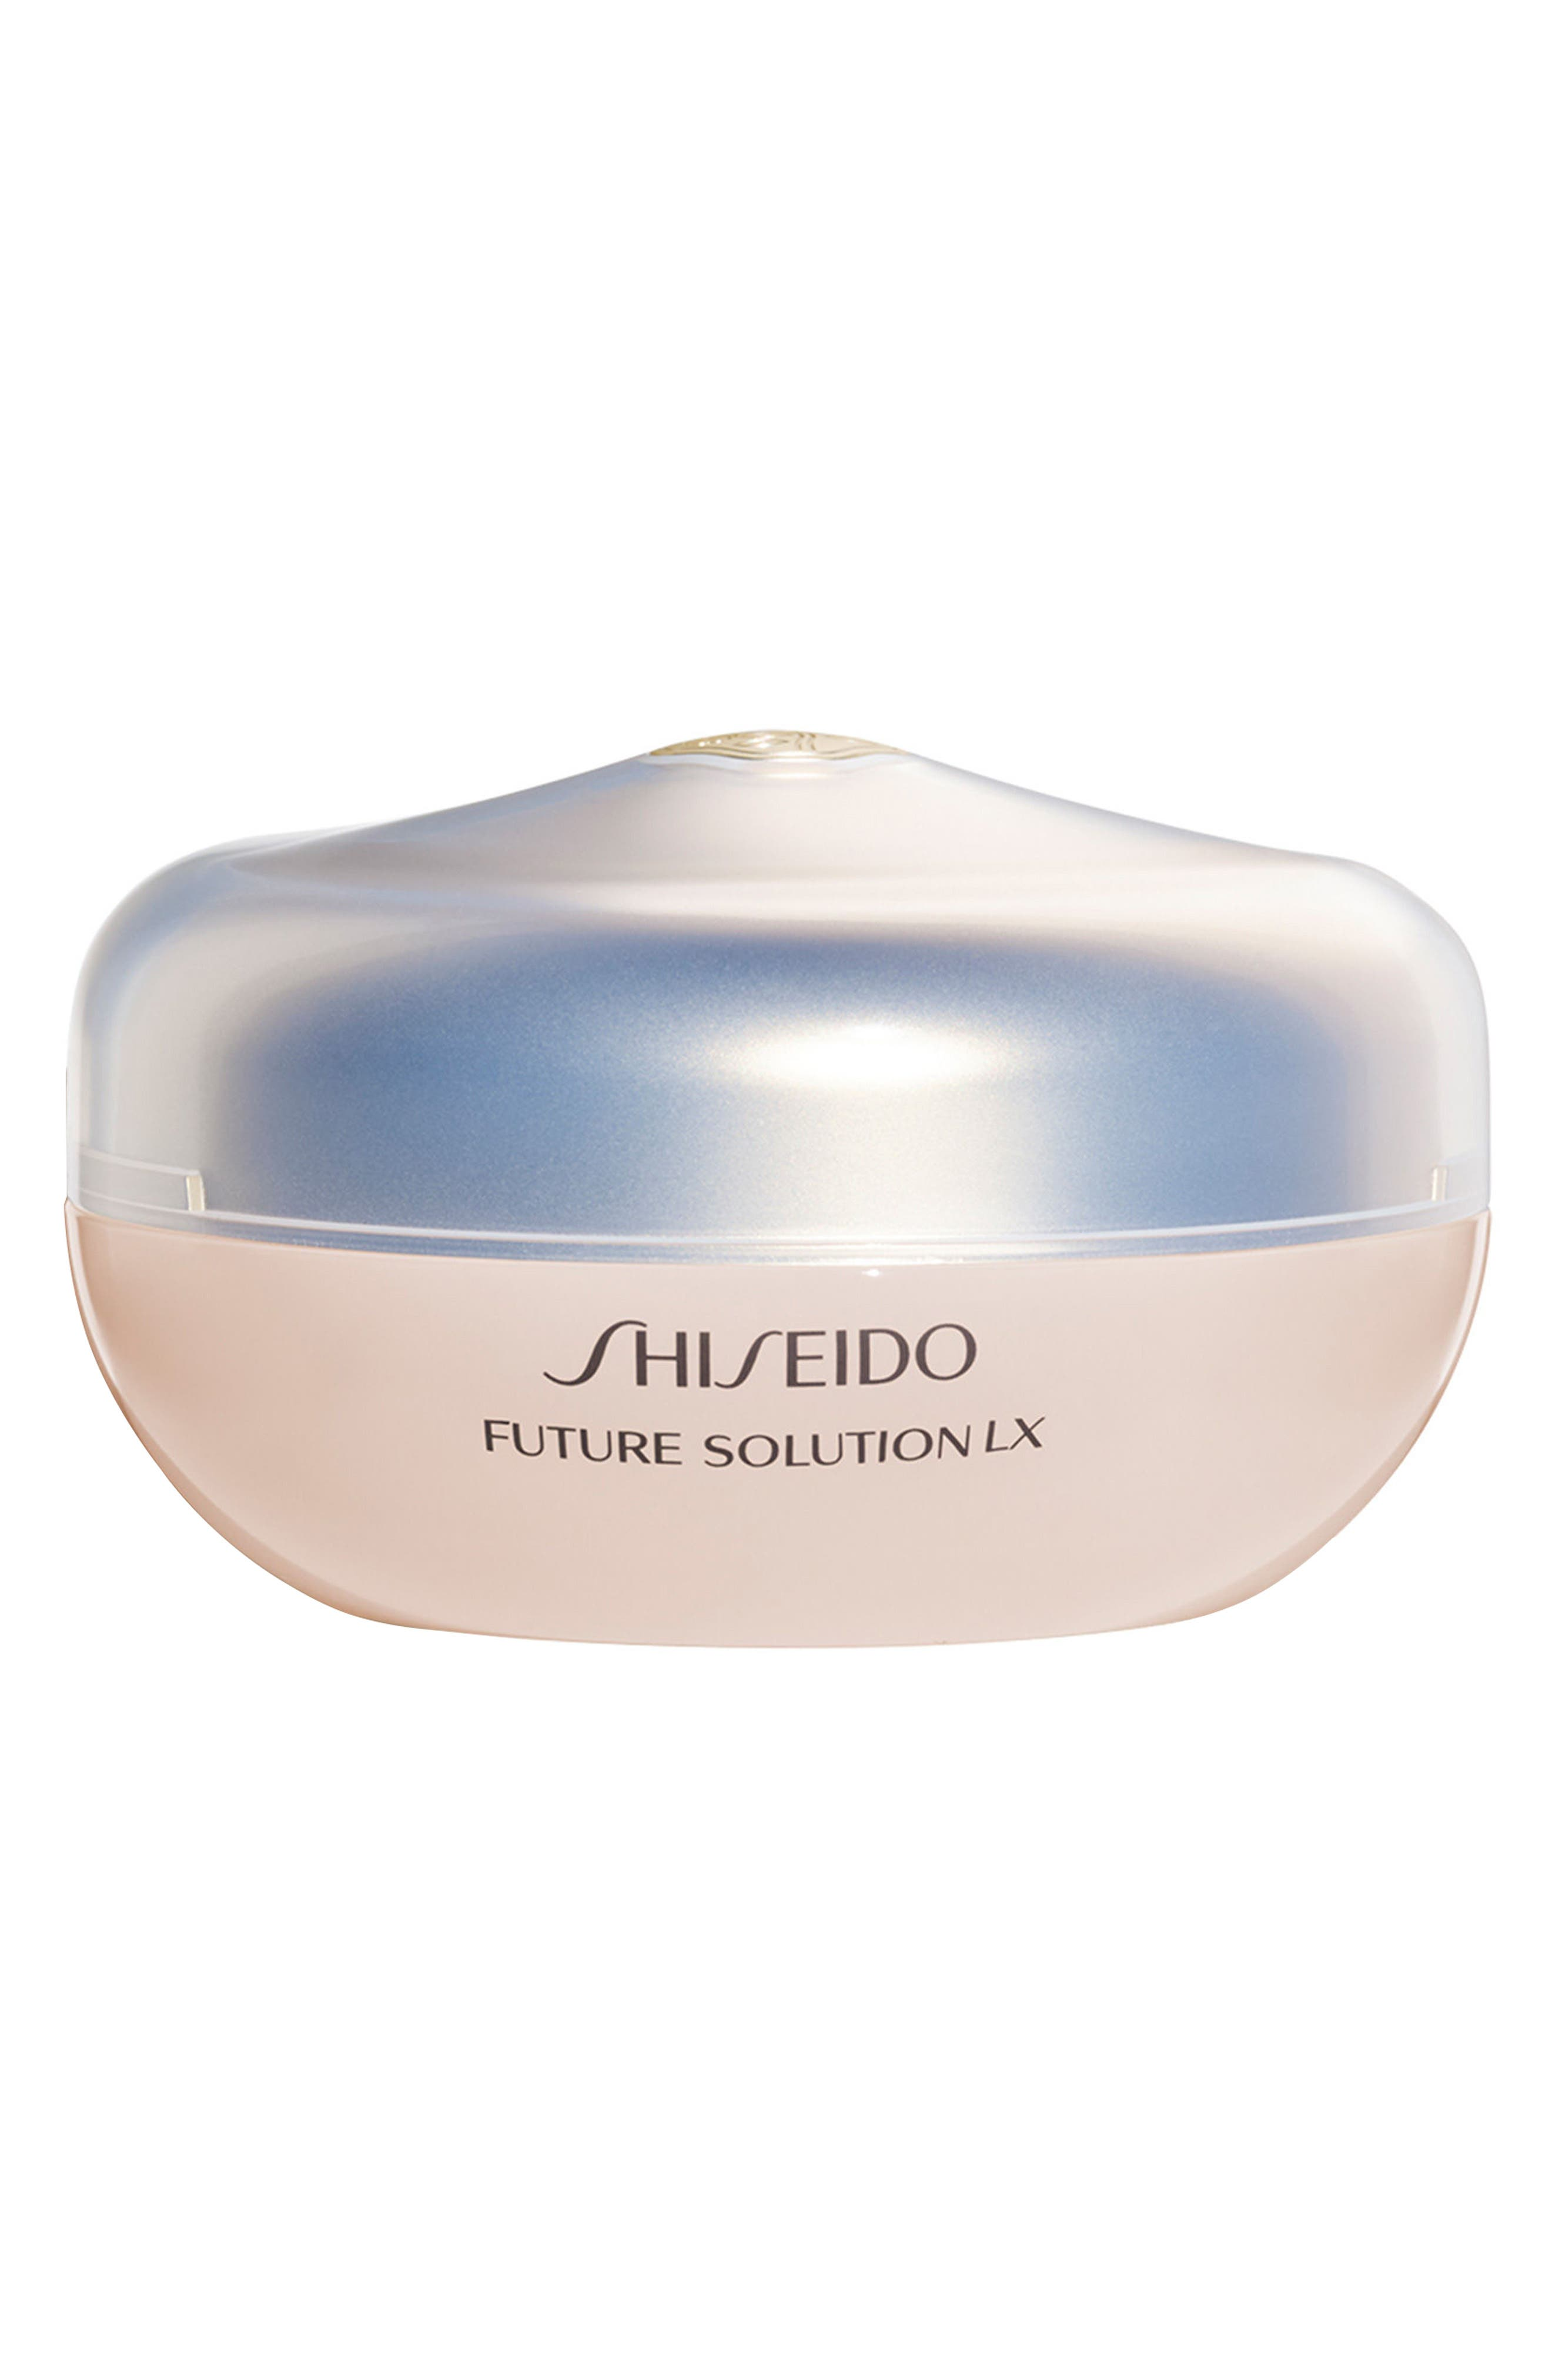 Future Solution LX Total Radiance Loose Powder,                             Main thumbnail 1, color,                             No Color